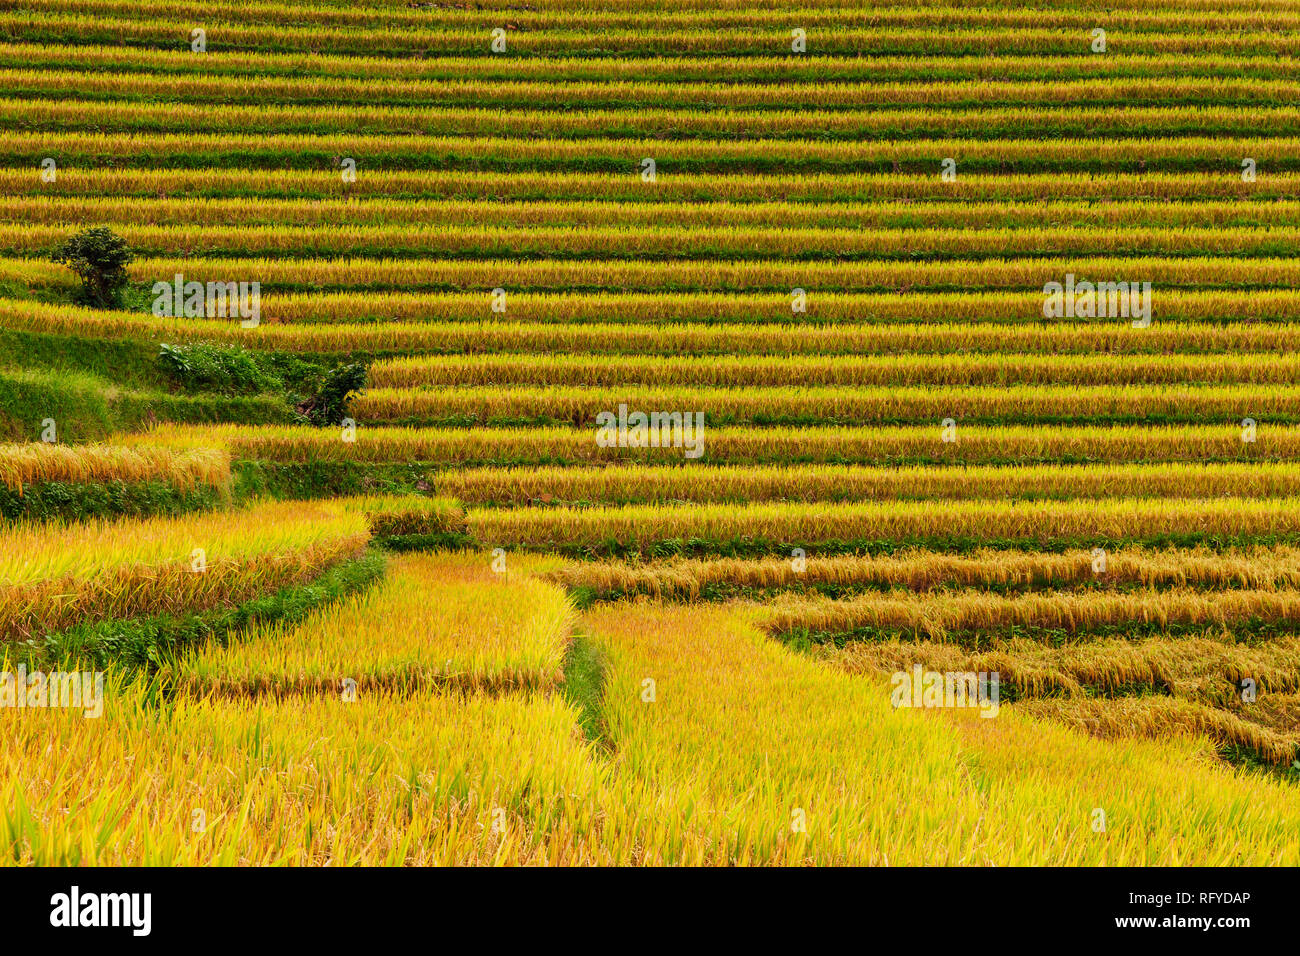 Close-up view of lines, textures, and colours of the rice paddies, Sapa, Vietnam - Stock Image